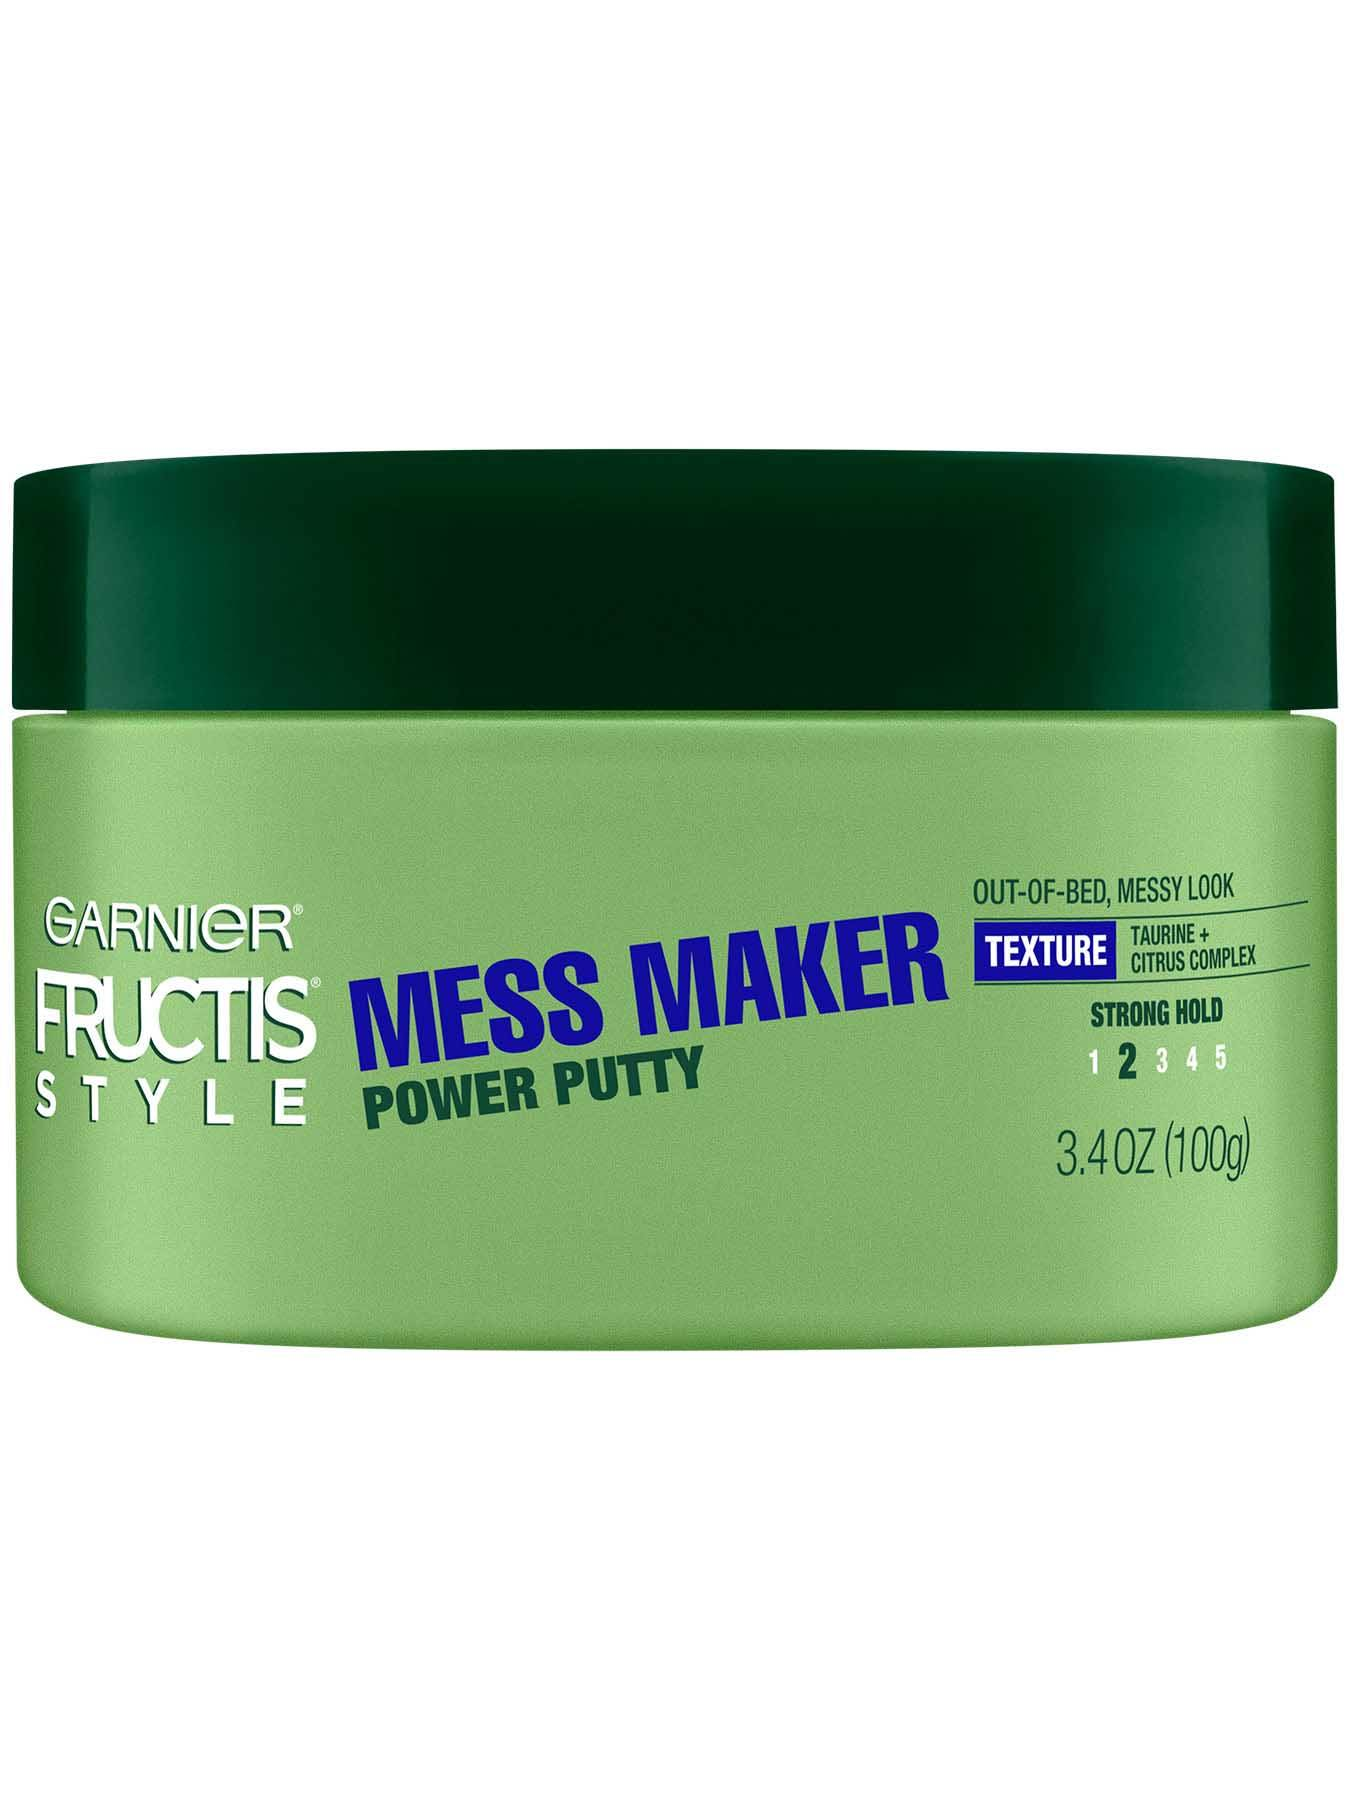 Garnier Fructis Style Mess Maker Power Putty Front